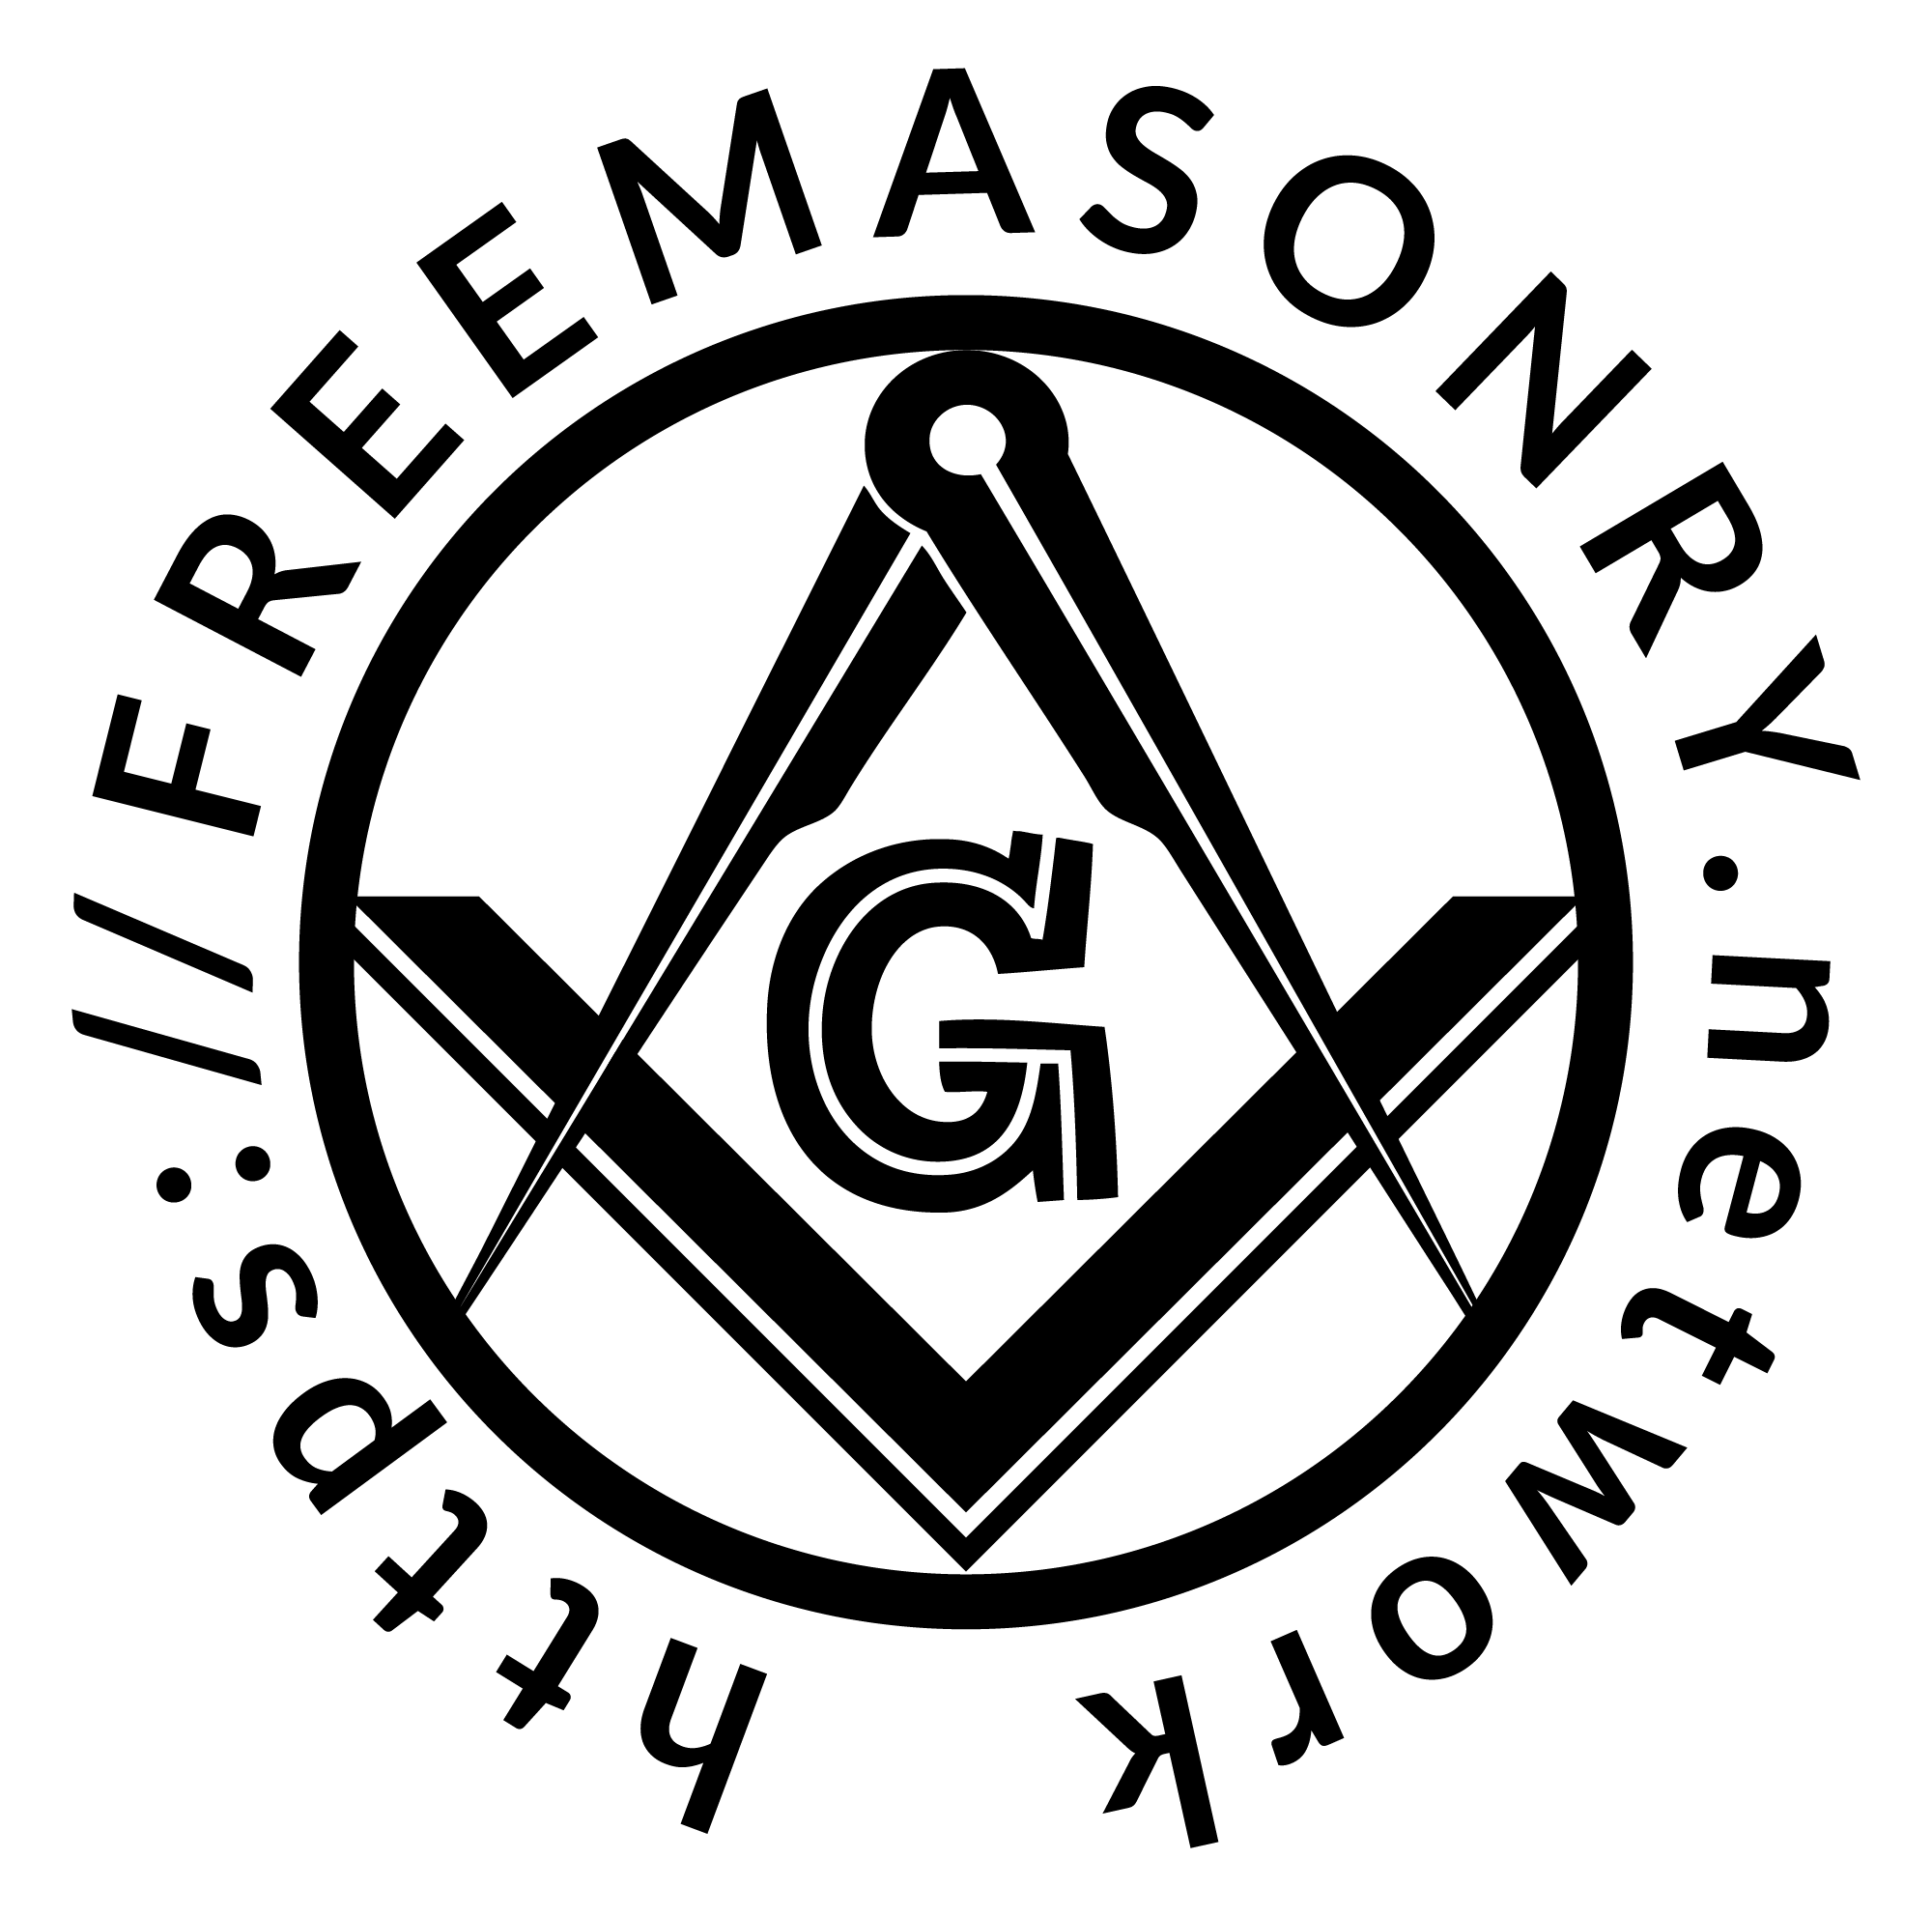 WHY IS FREEMASONRY DIVIDED?